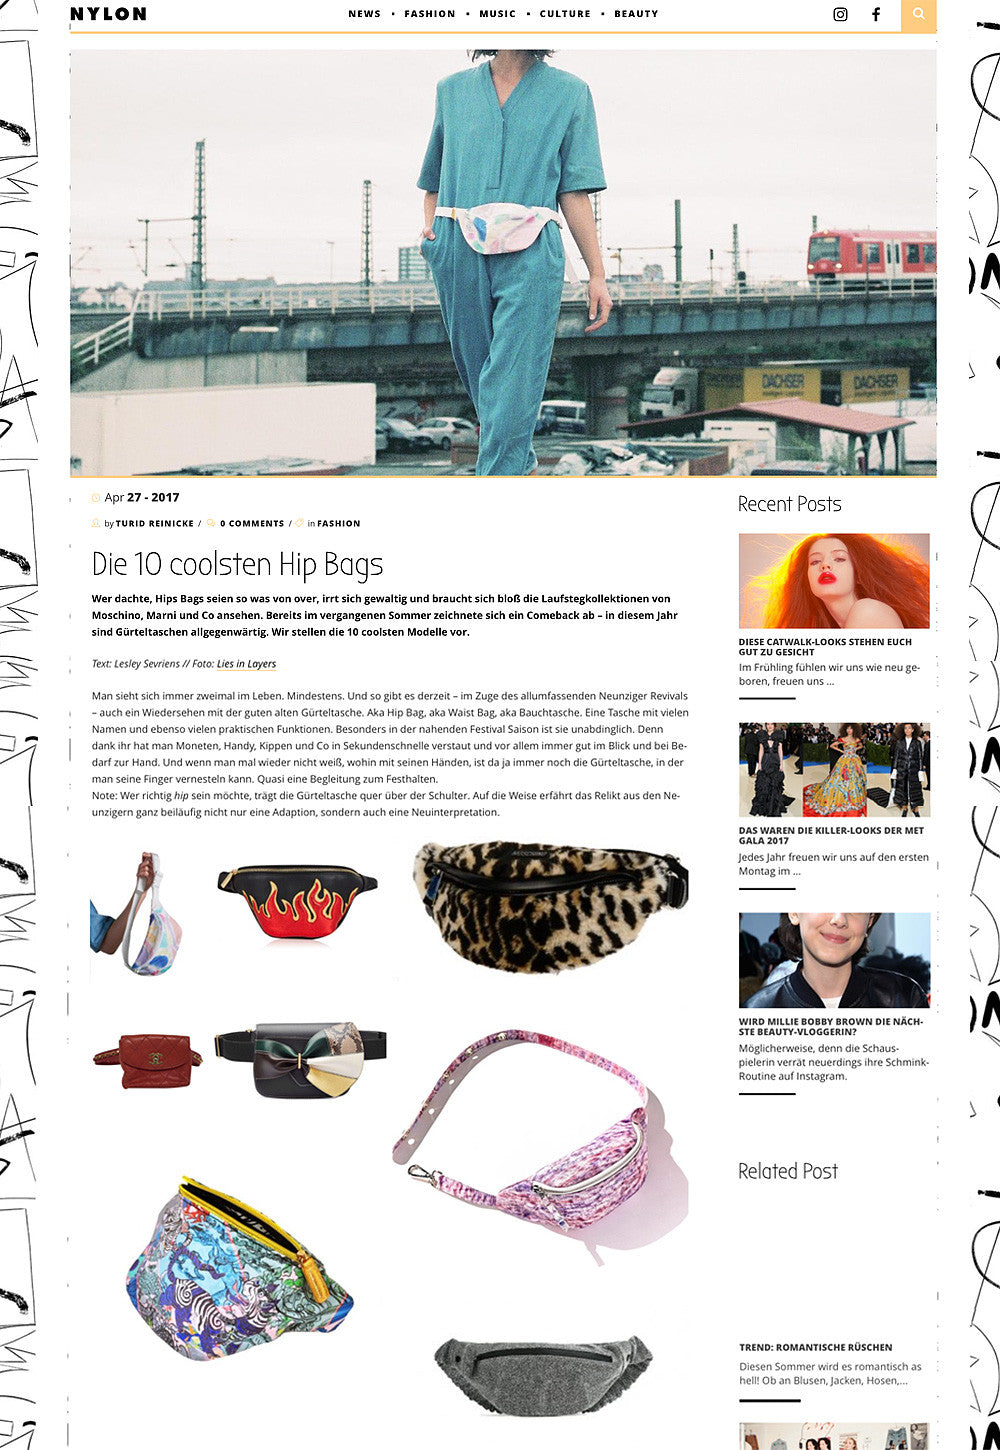 EARLY AT NYLON MAGAZINE TOP 10 COOLEST HIPBAGS